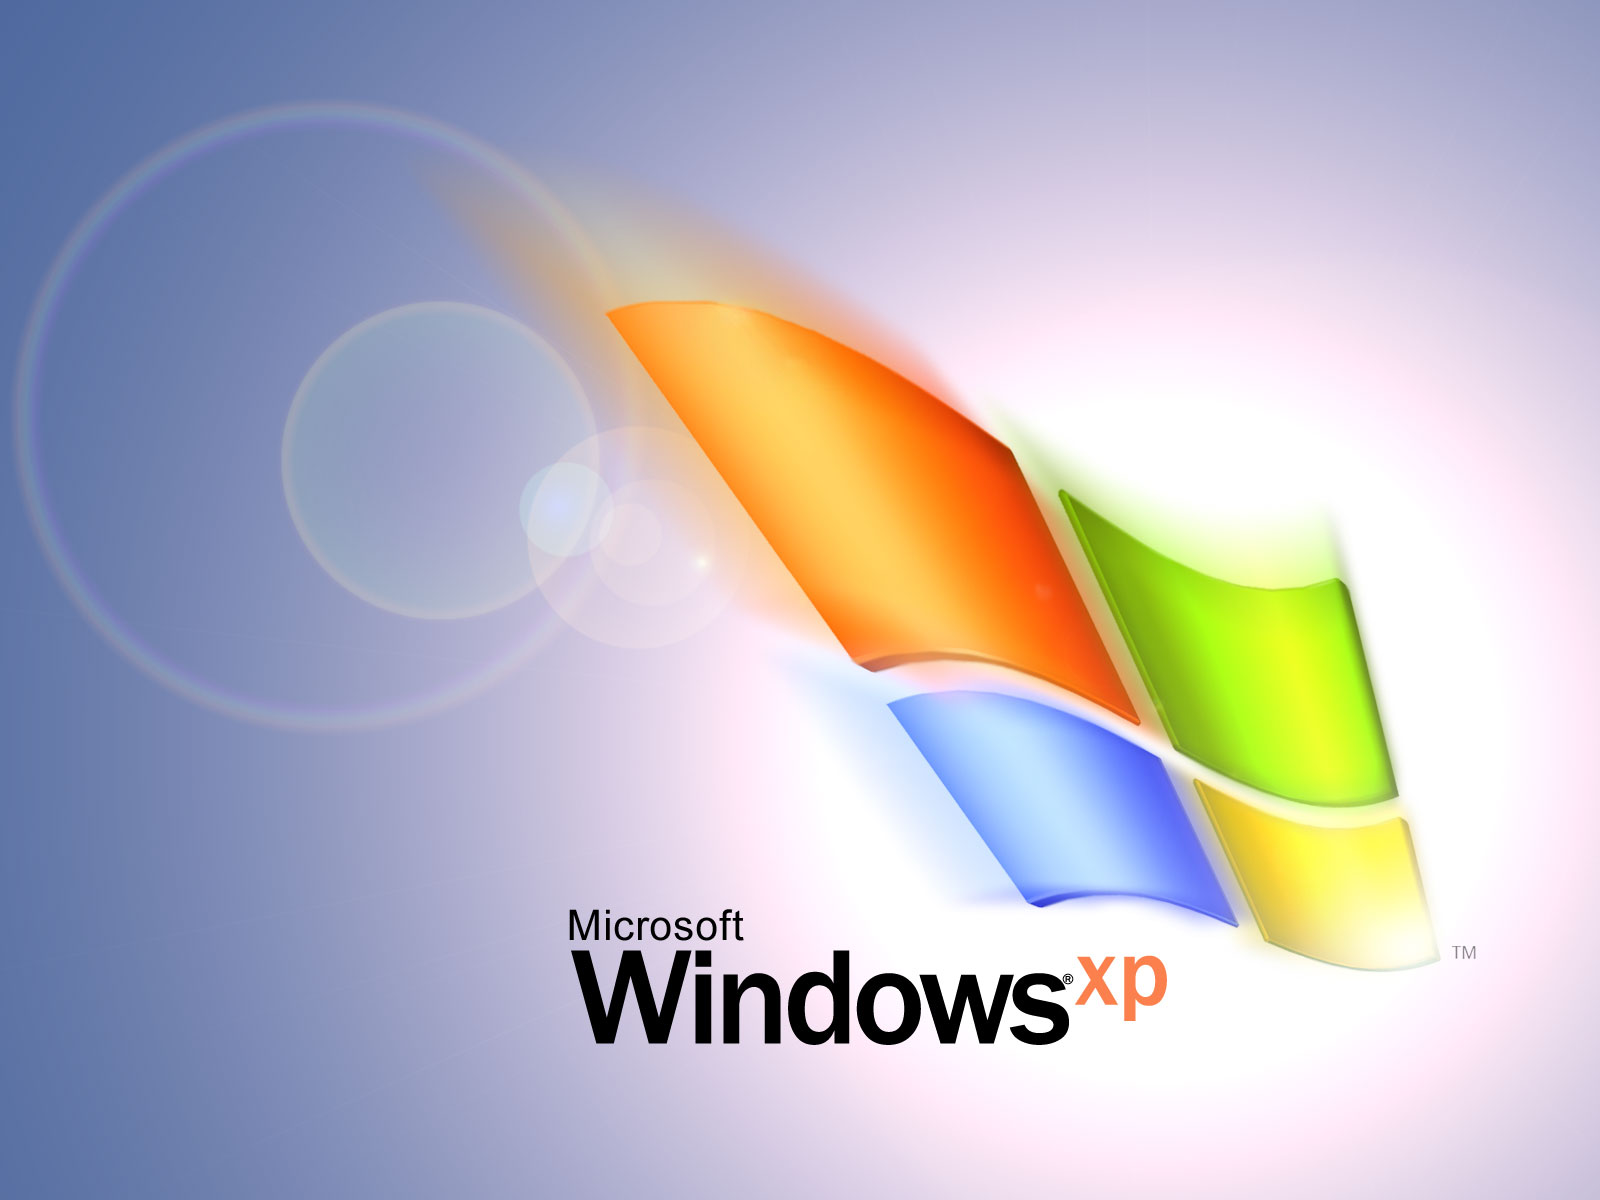 microsoft windows xp wallpaper - wallpapersafari